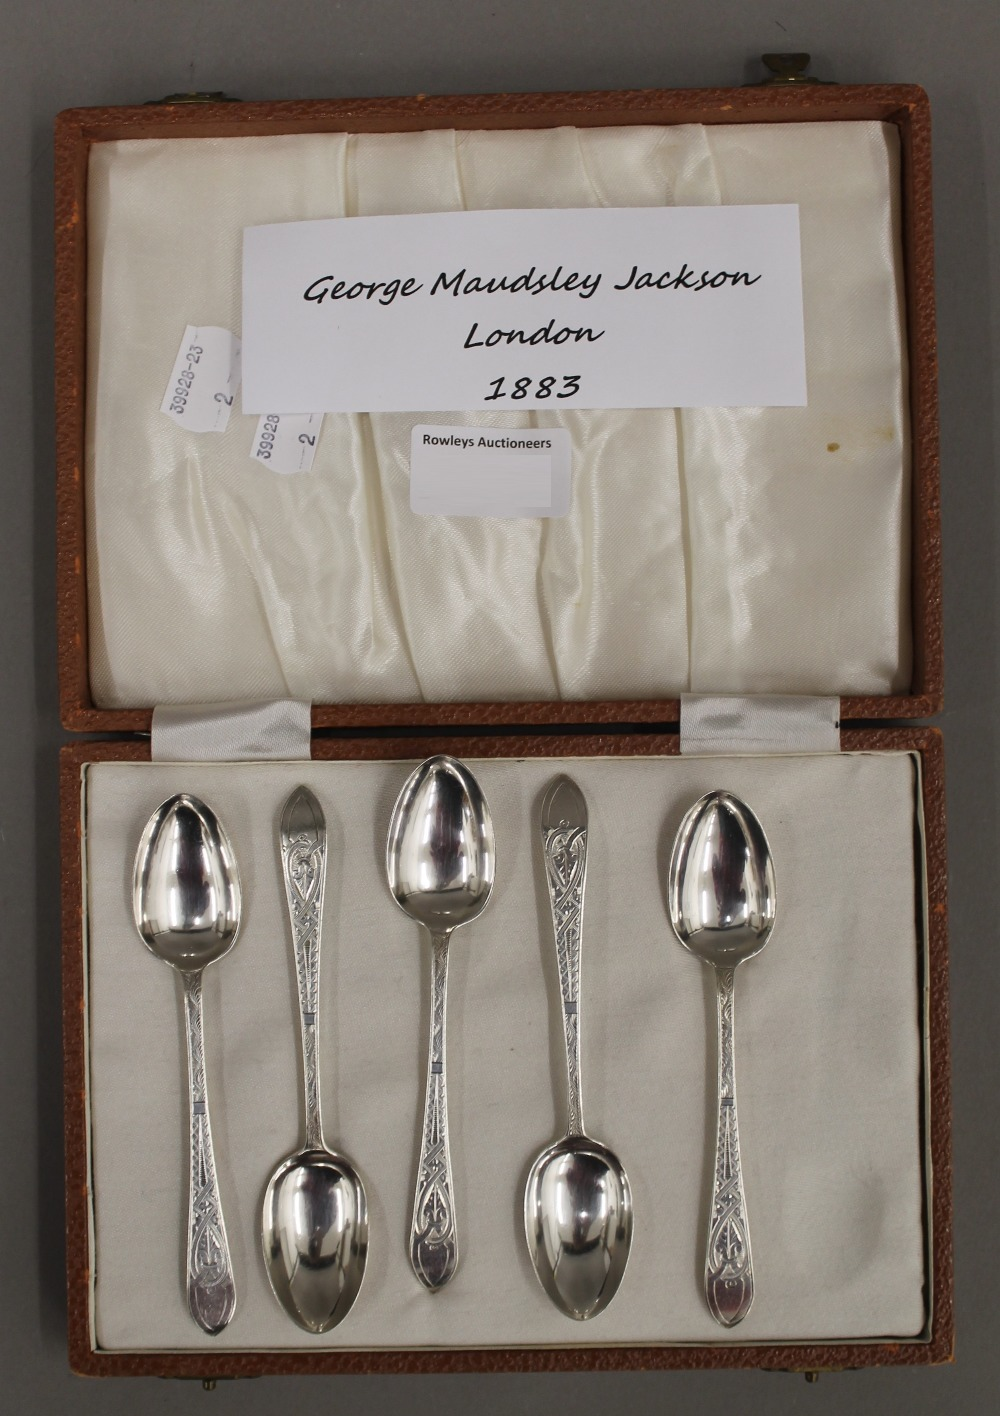 Lot 29 - A straight set of five bright cut coffee spoons by George Maudsley Jackson of London 1883,